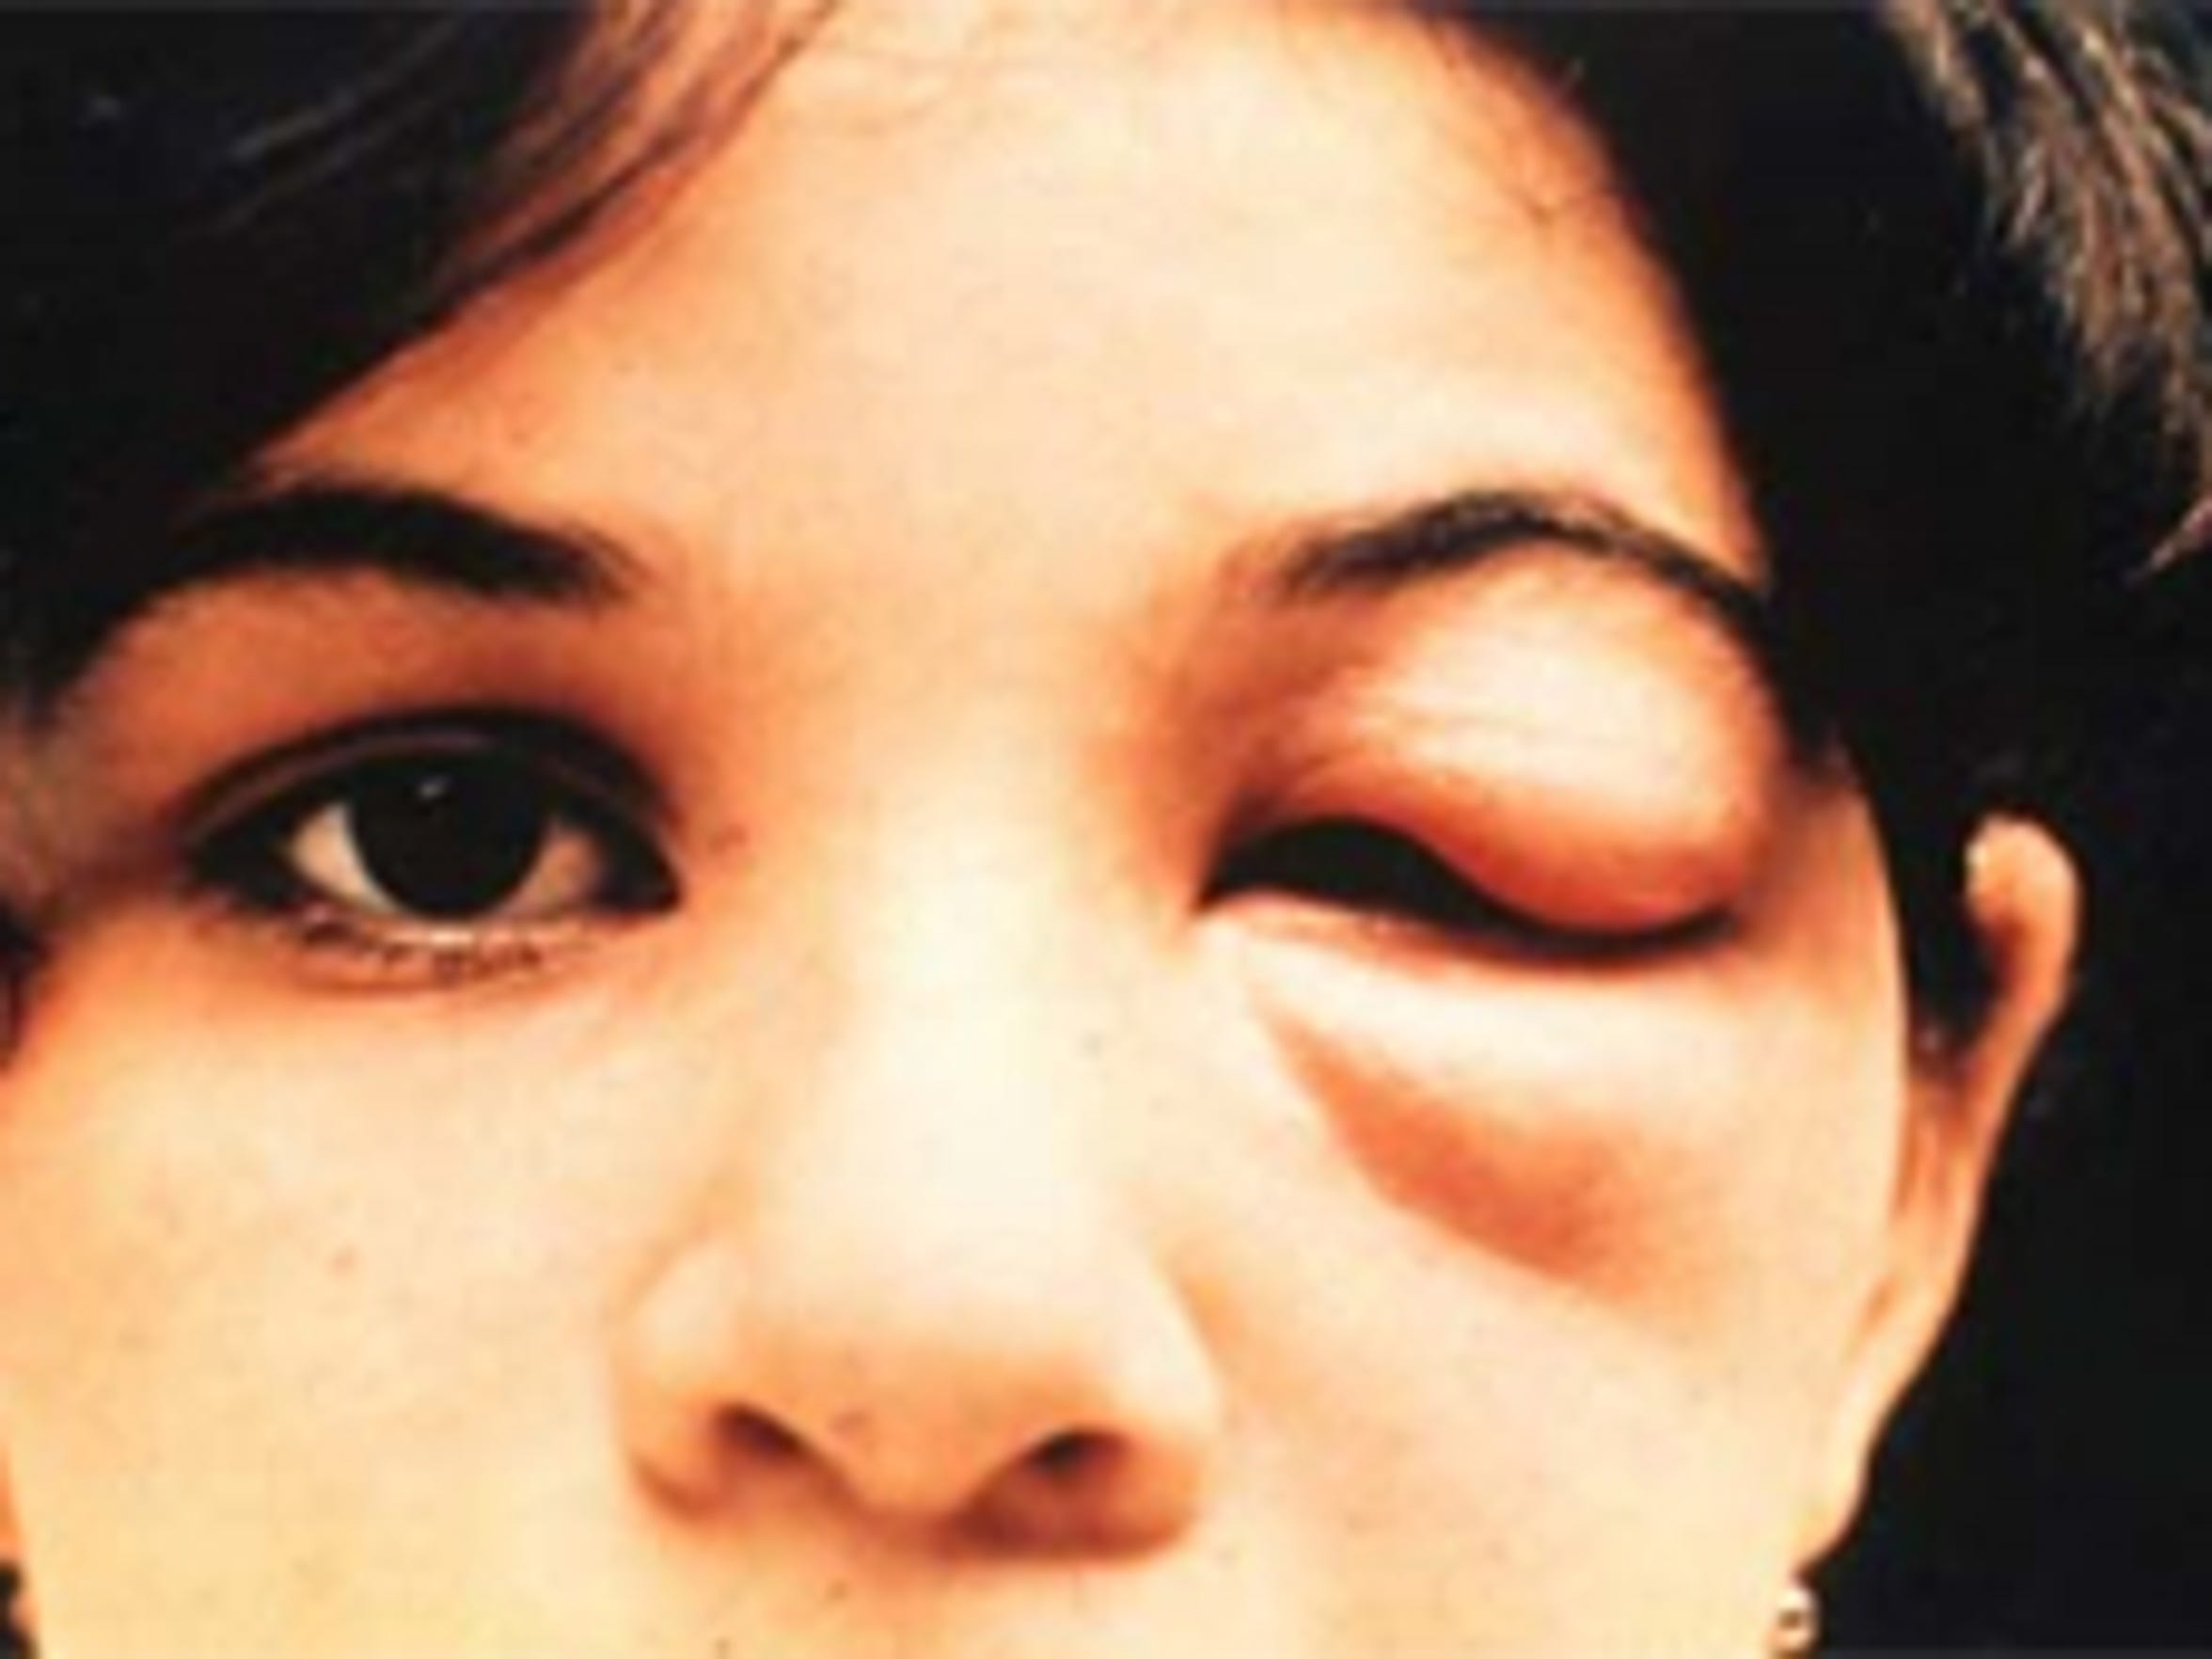 Swelling of an eyelid is a common symptom of the kissing